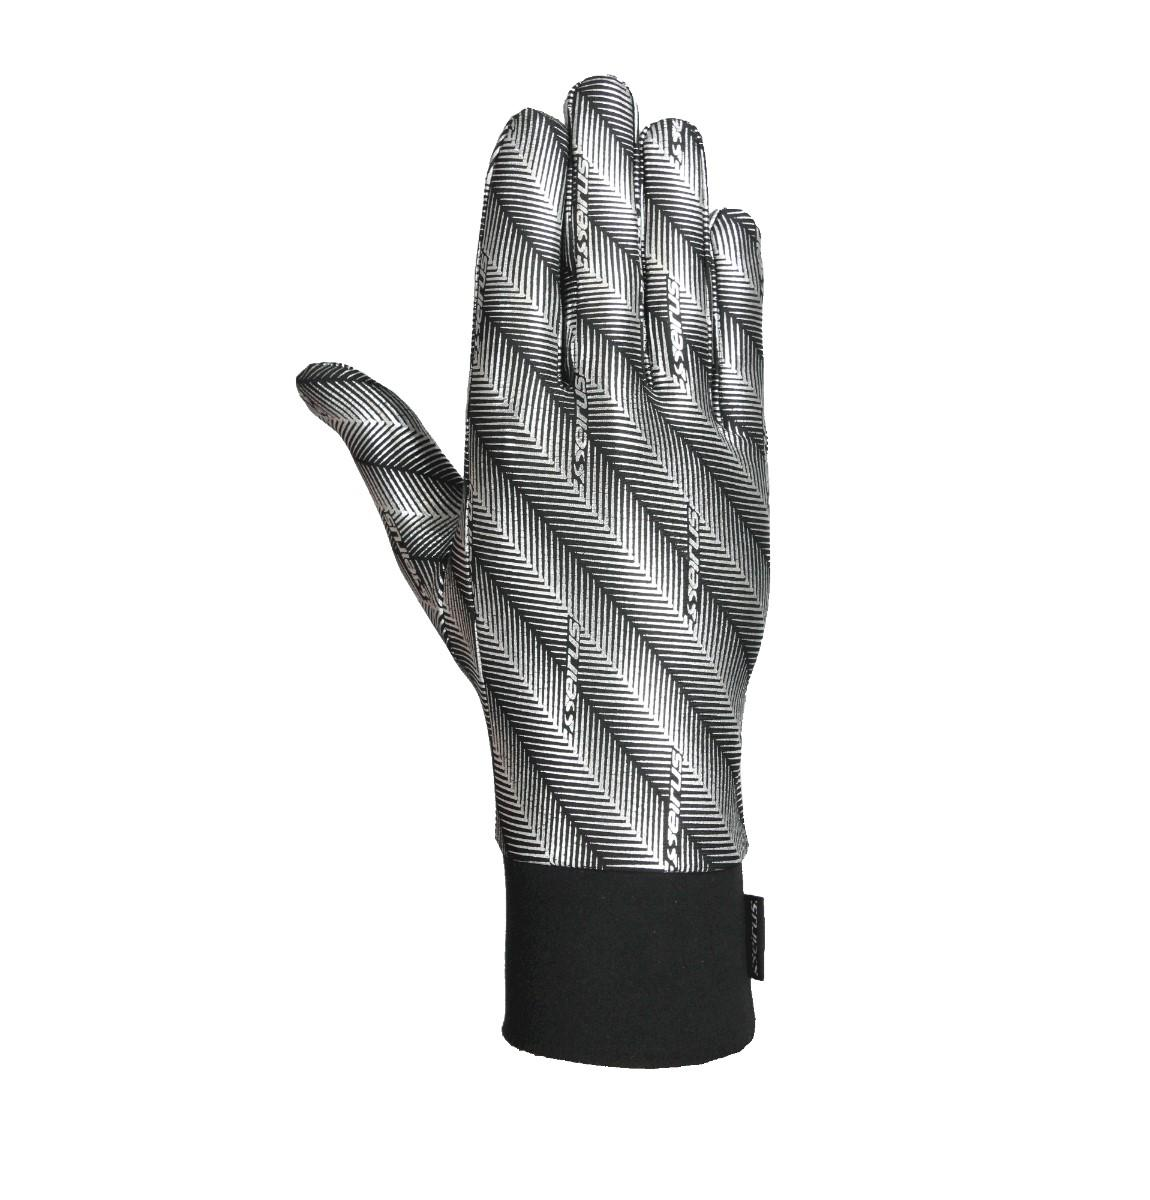 Seirus Heatwave glove in silver